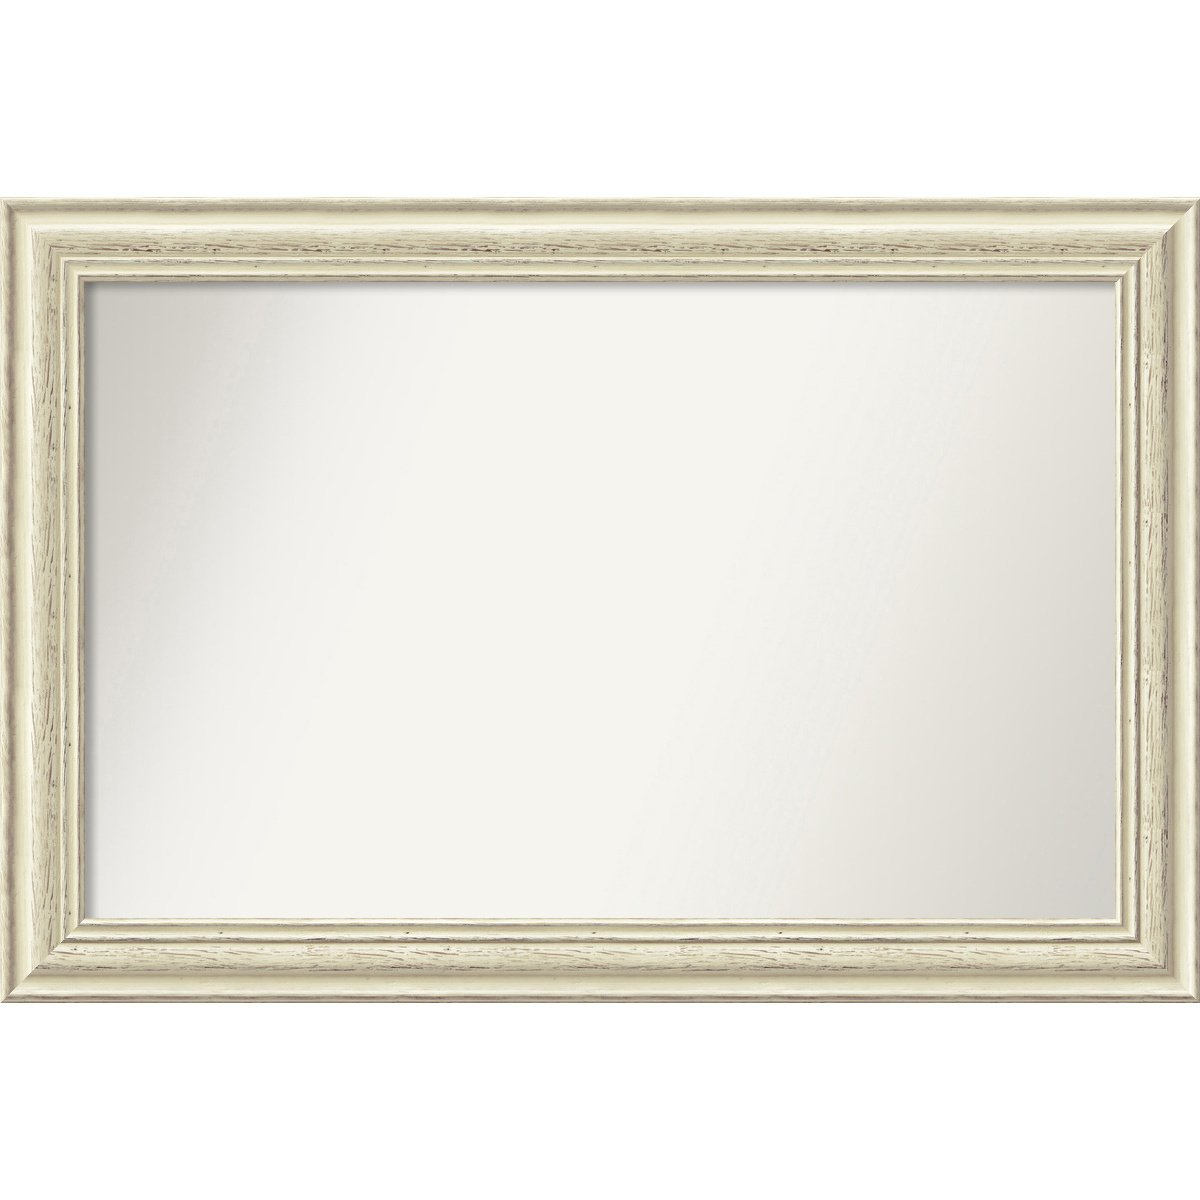 Wall Mirror, Choose Your Custom Size Medium, Country White wash Wood